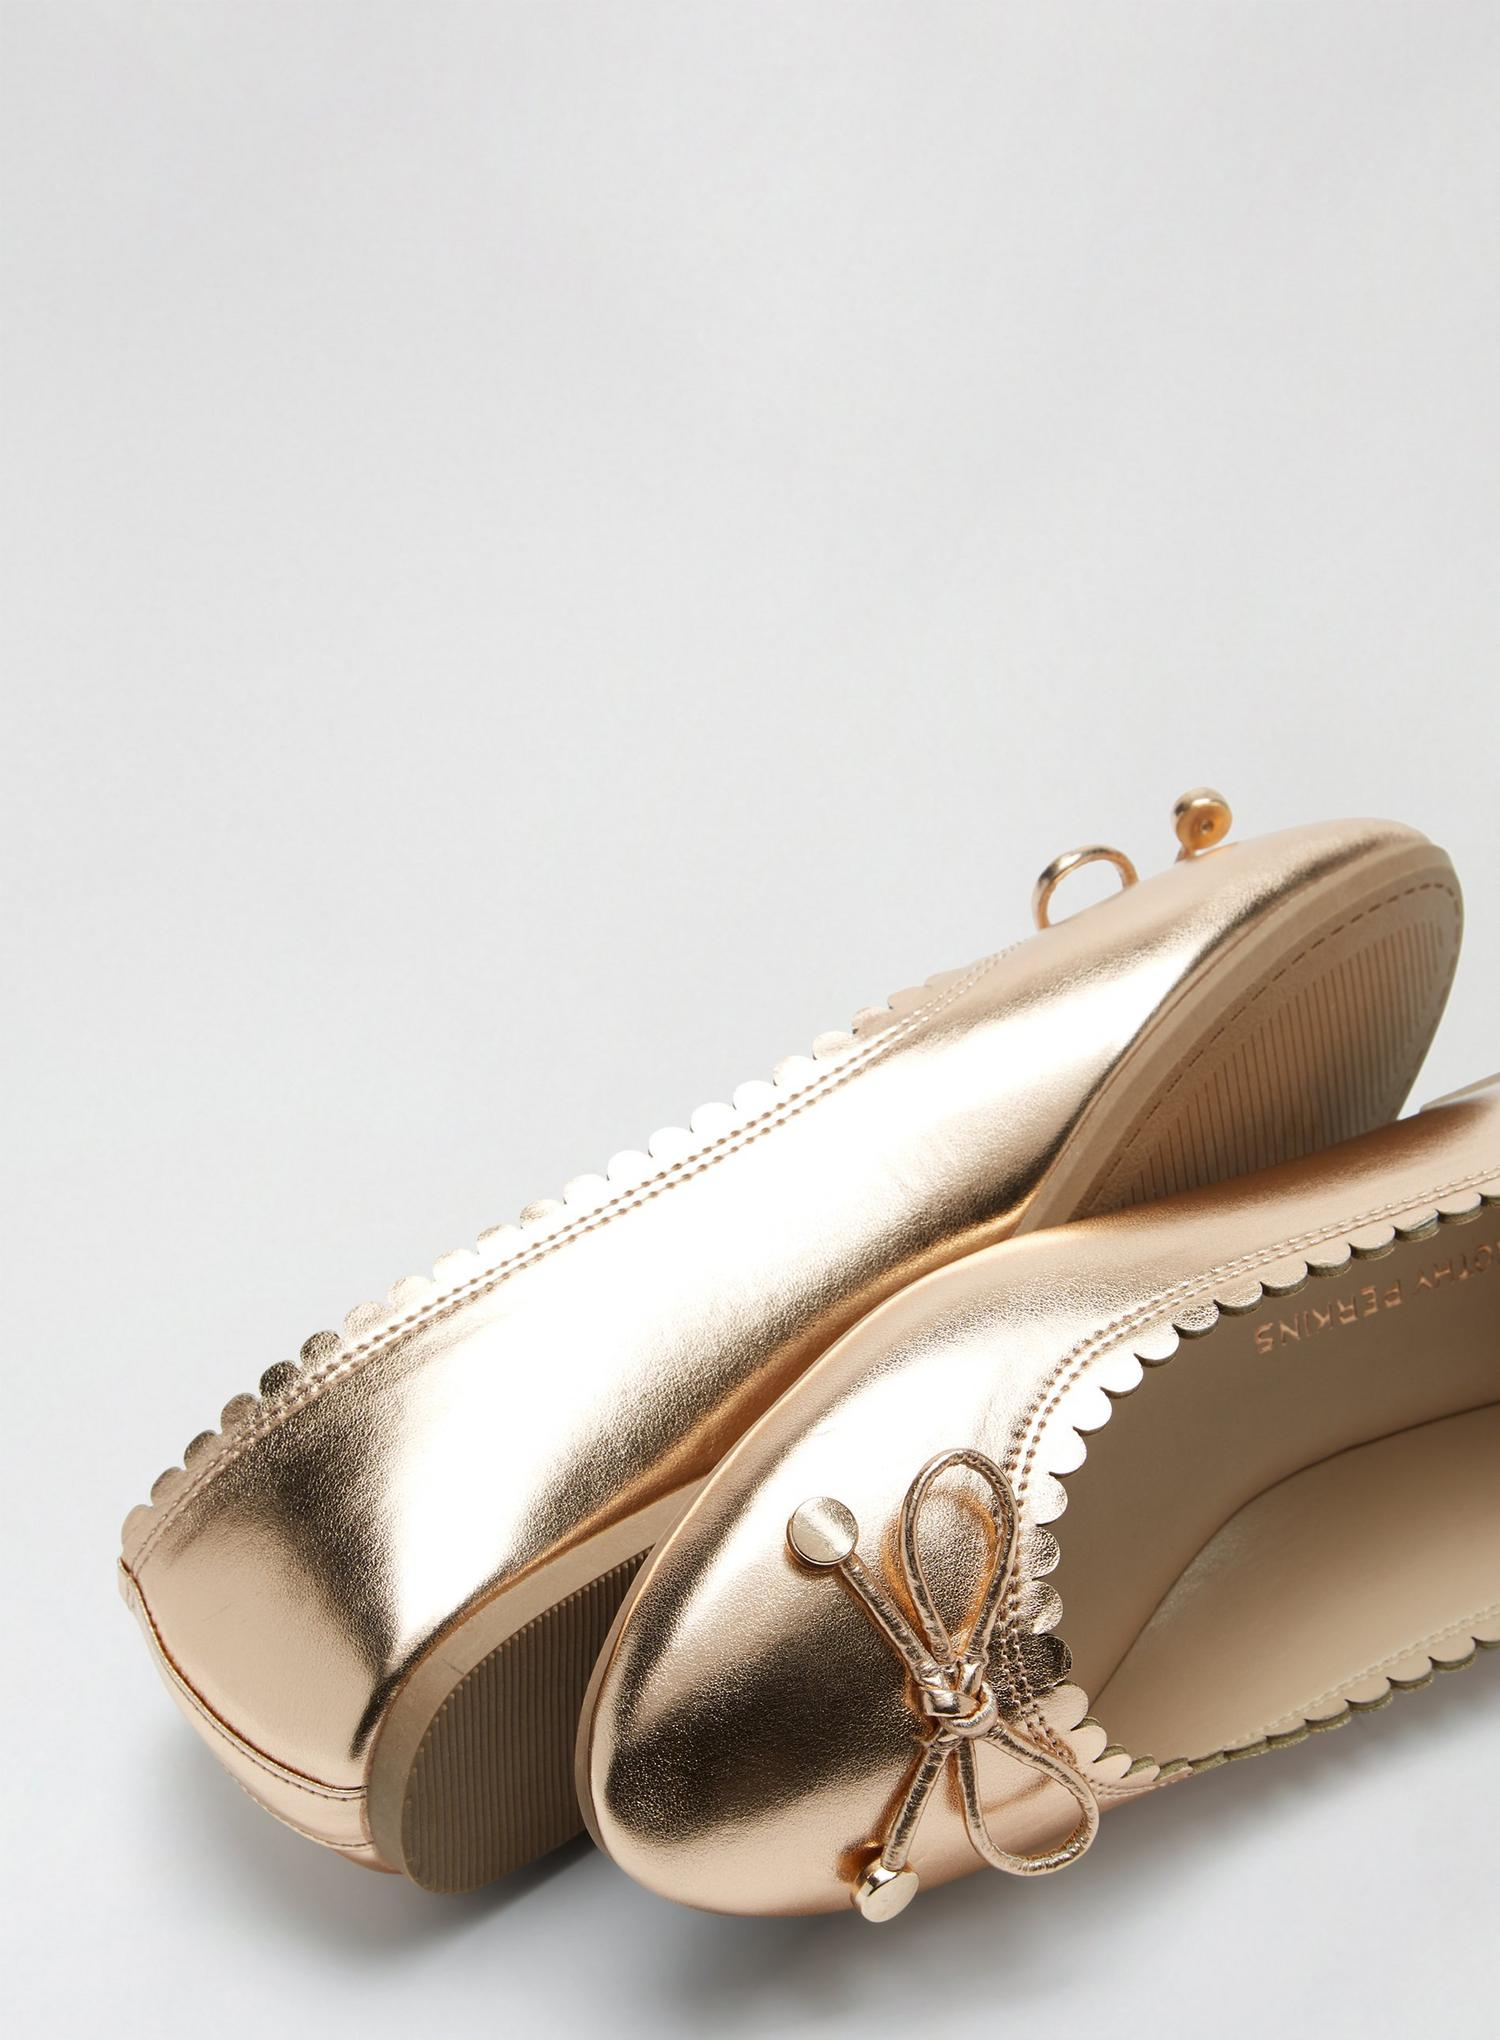 579 Rose Gold Peace Pump image number 4